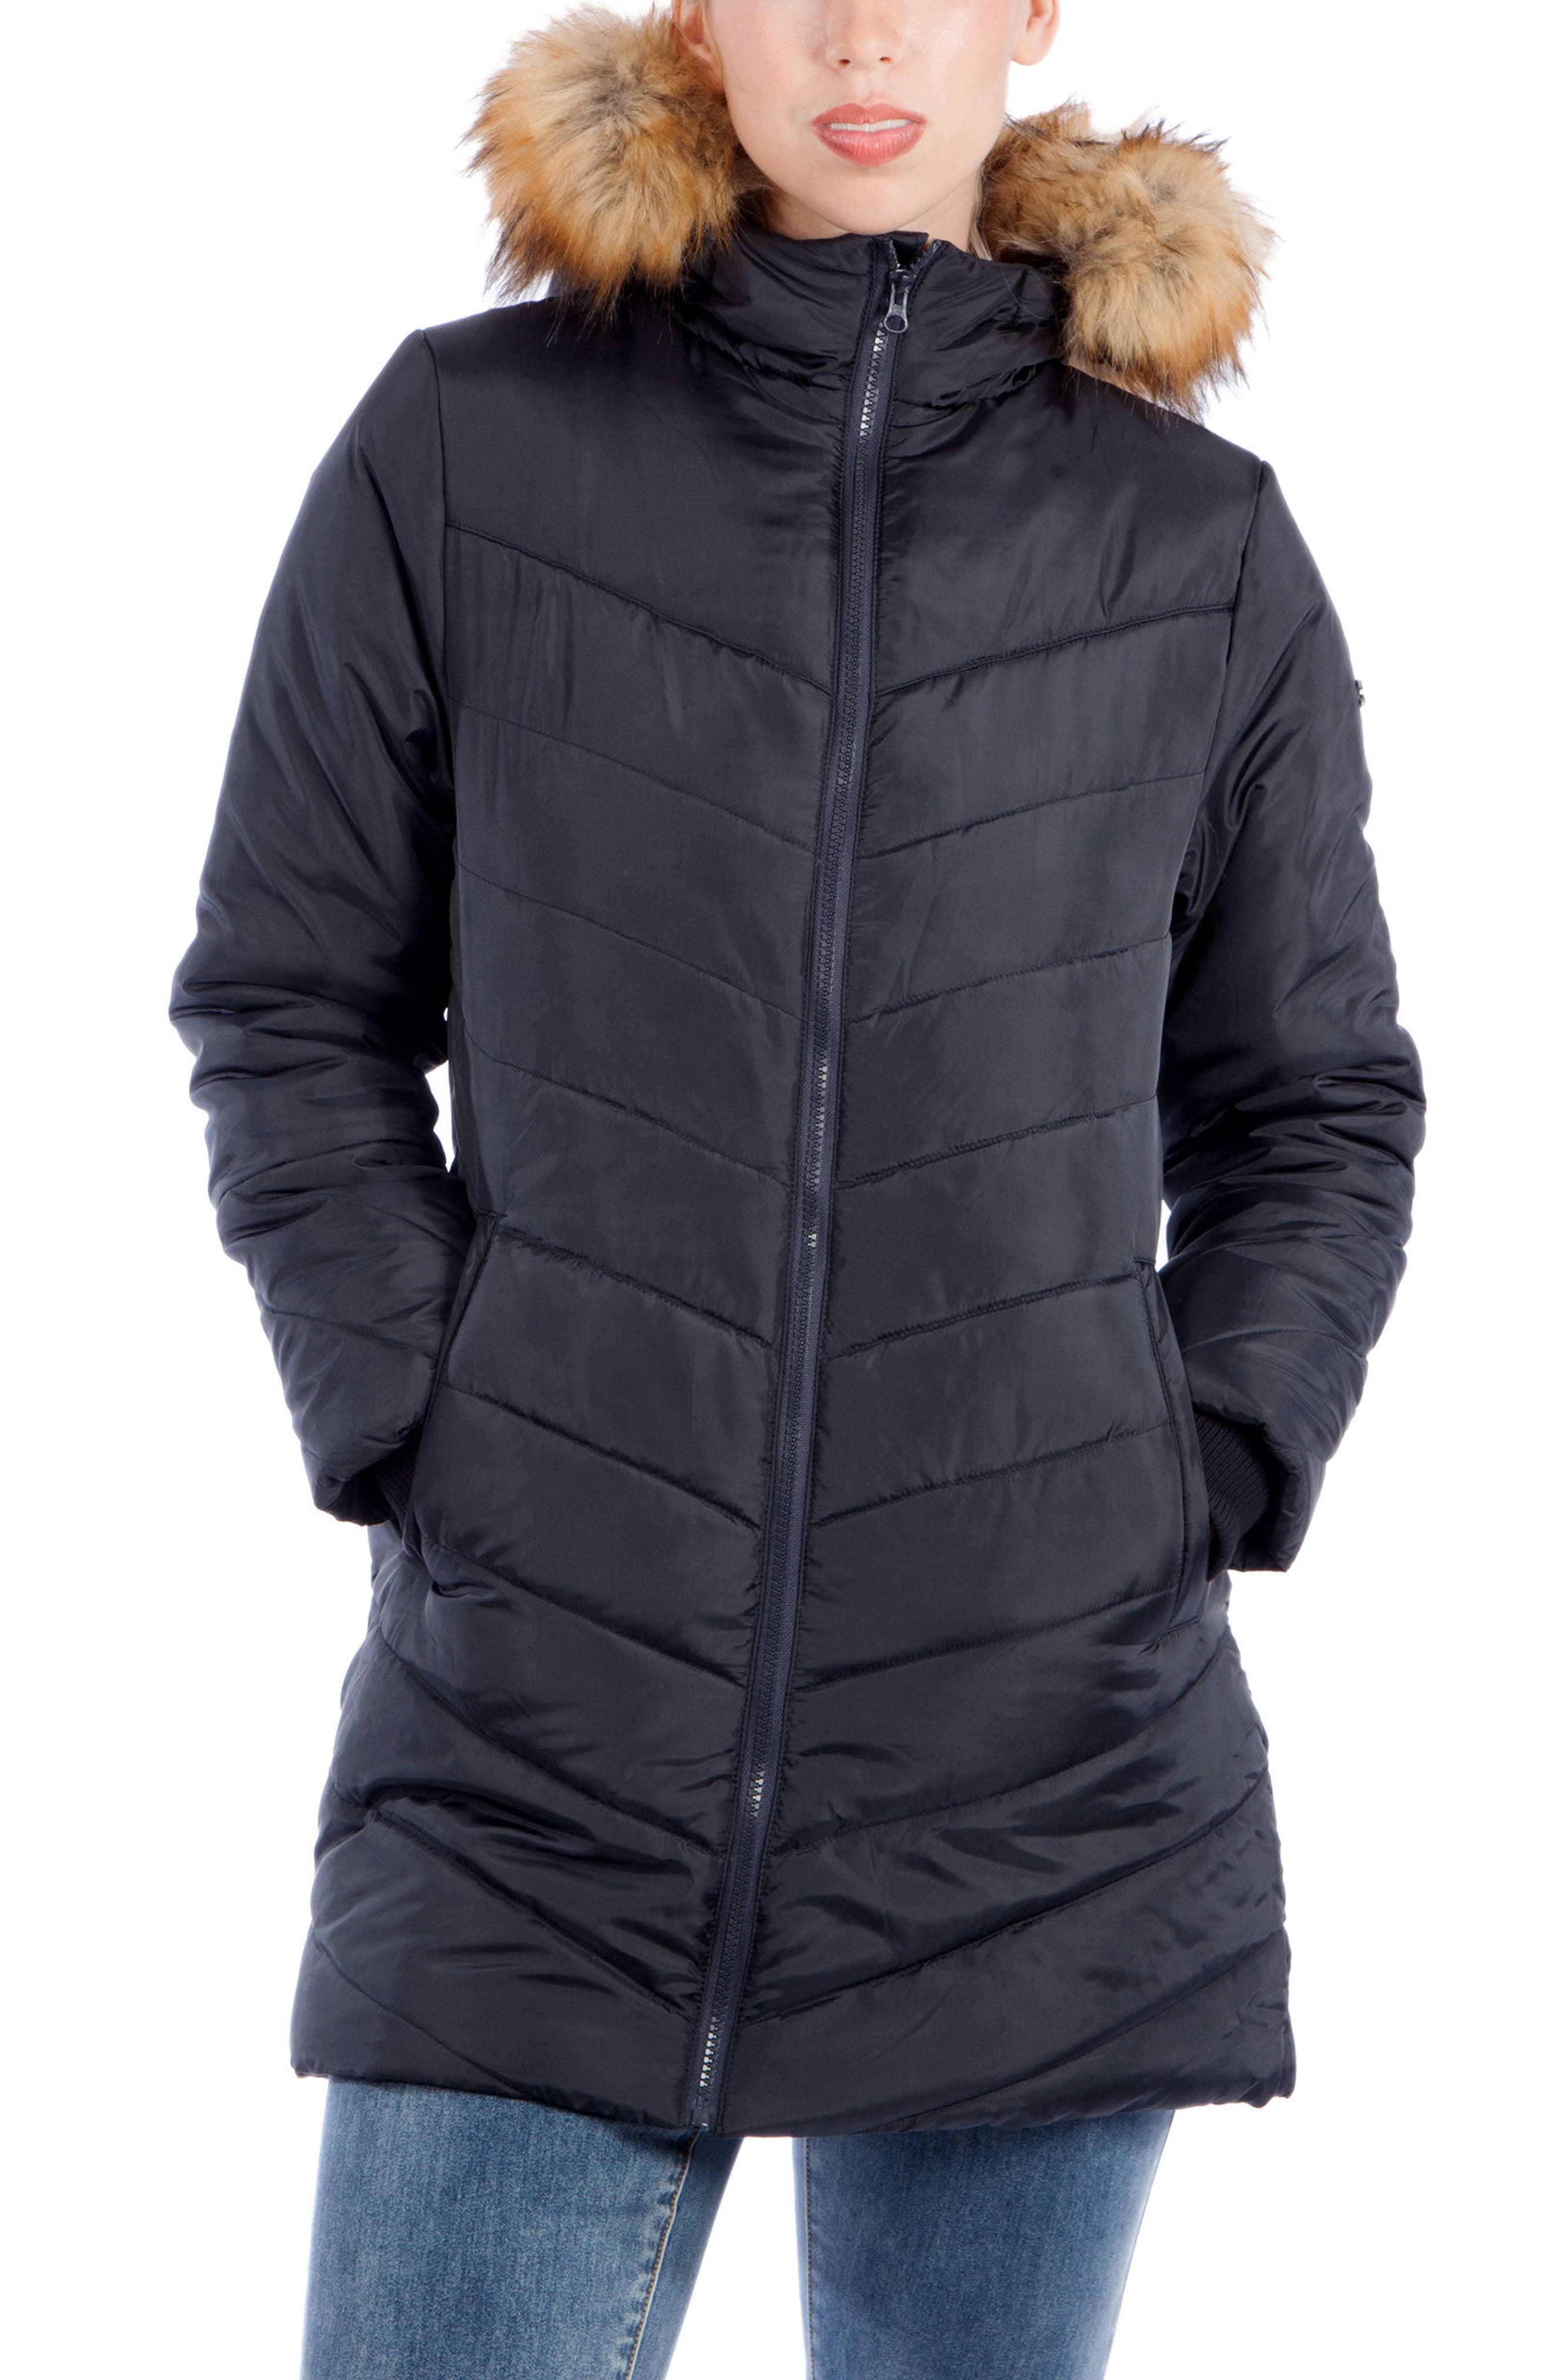 MODERN ETERNITY Faux Fur Trim Convertible Puffer 3-in-1 Maternity Jacket, Main, color, BLACK